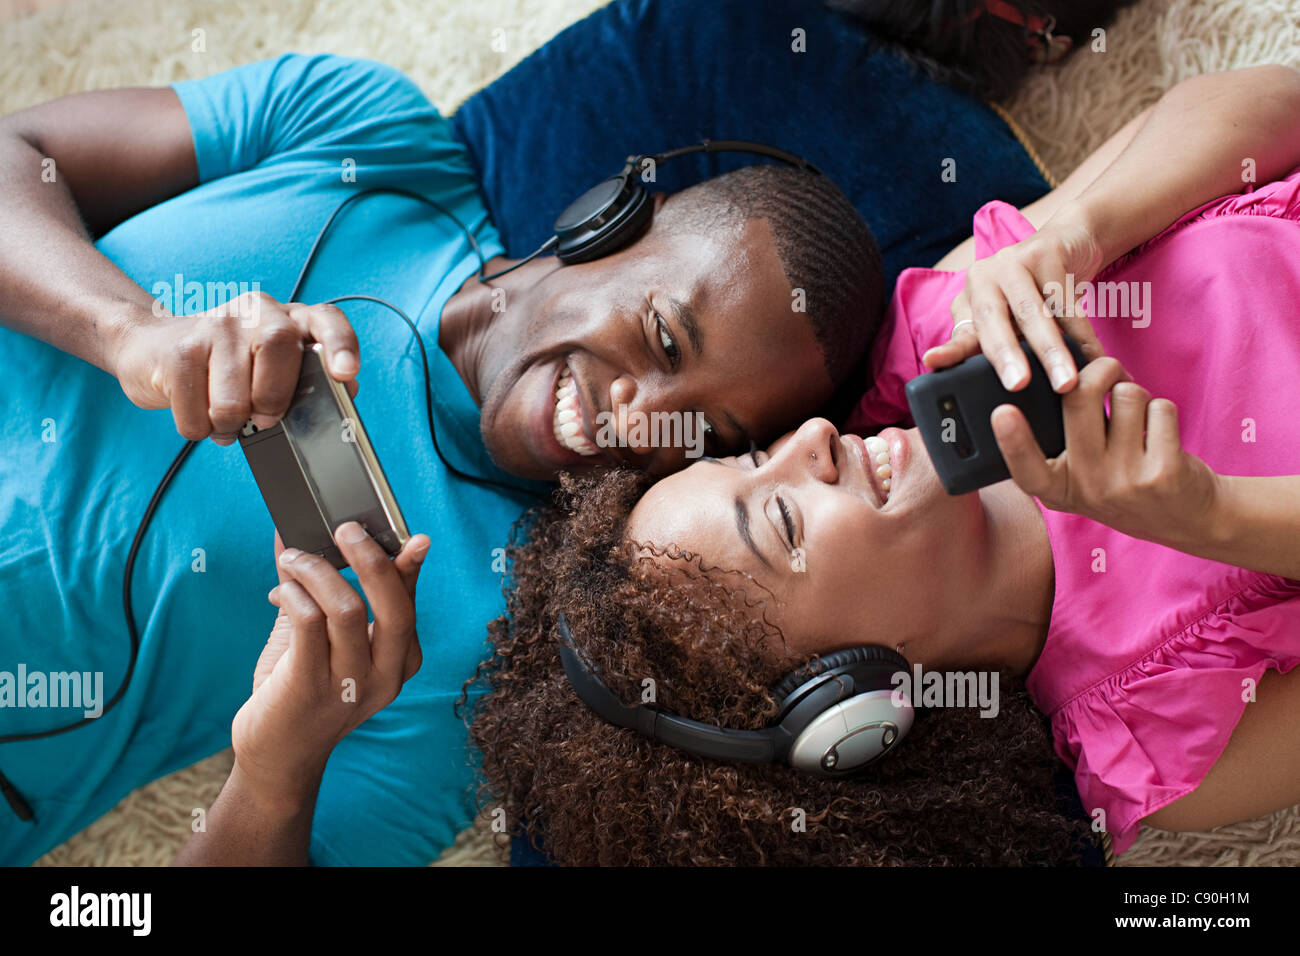 Man and woman playing on handheld device and smartphone - Stock Image